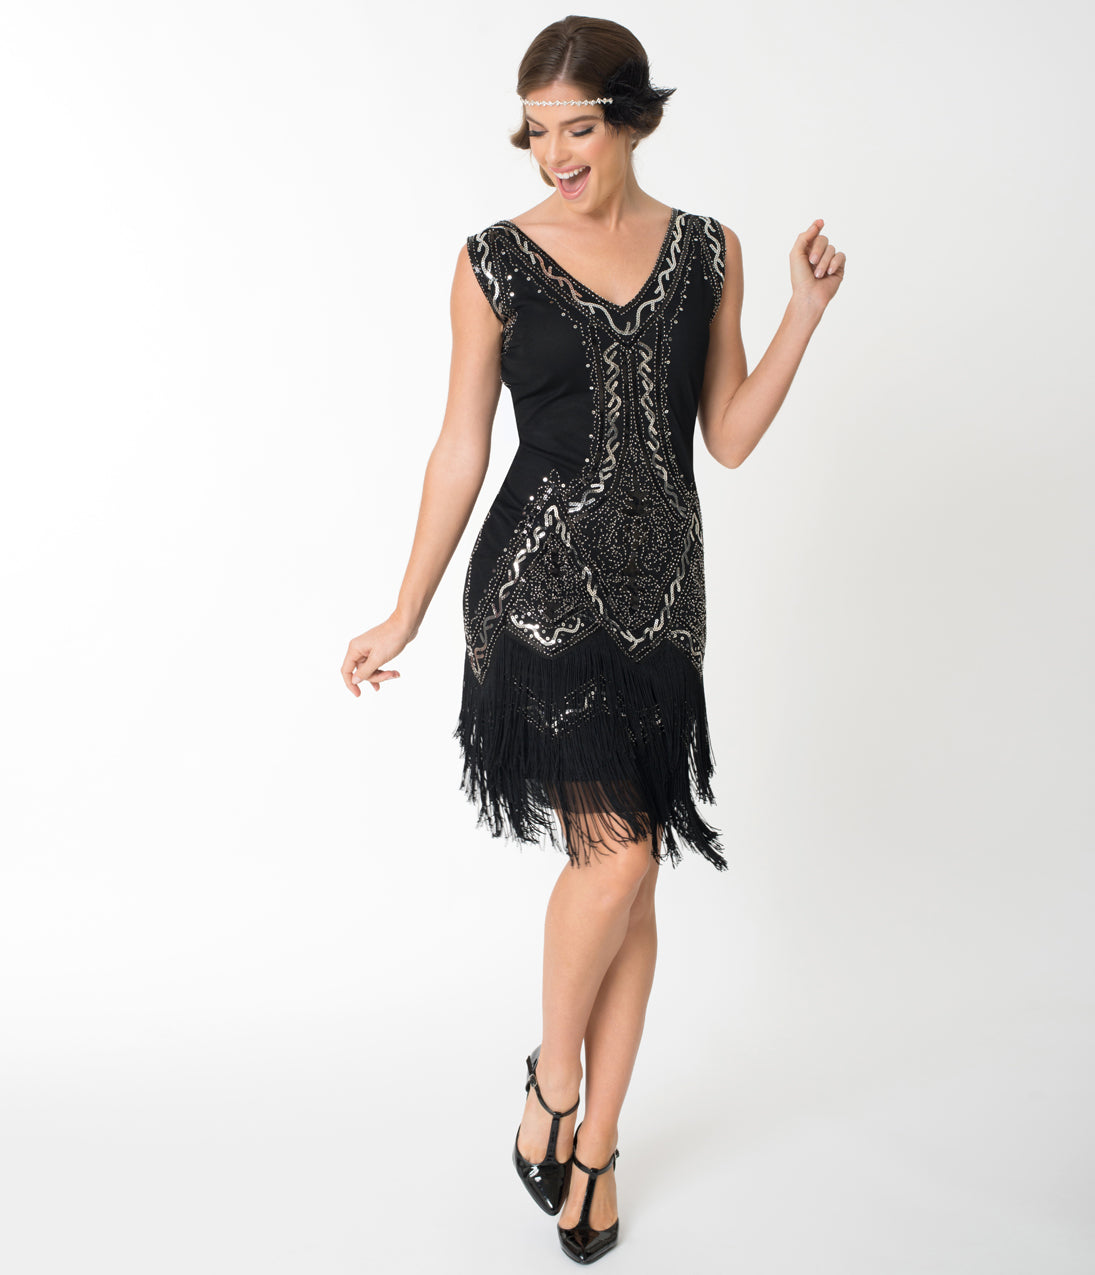 Roaring 20s Costumes- Flapper Costumes, Gangster Costumes Unique Vintage 1920S Style Black  Silver Beaded Sylvie Flapper Dress $98.00 AT vintagedancer.com